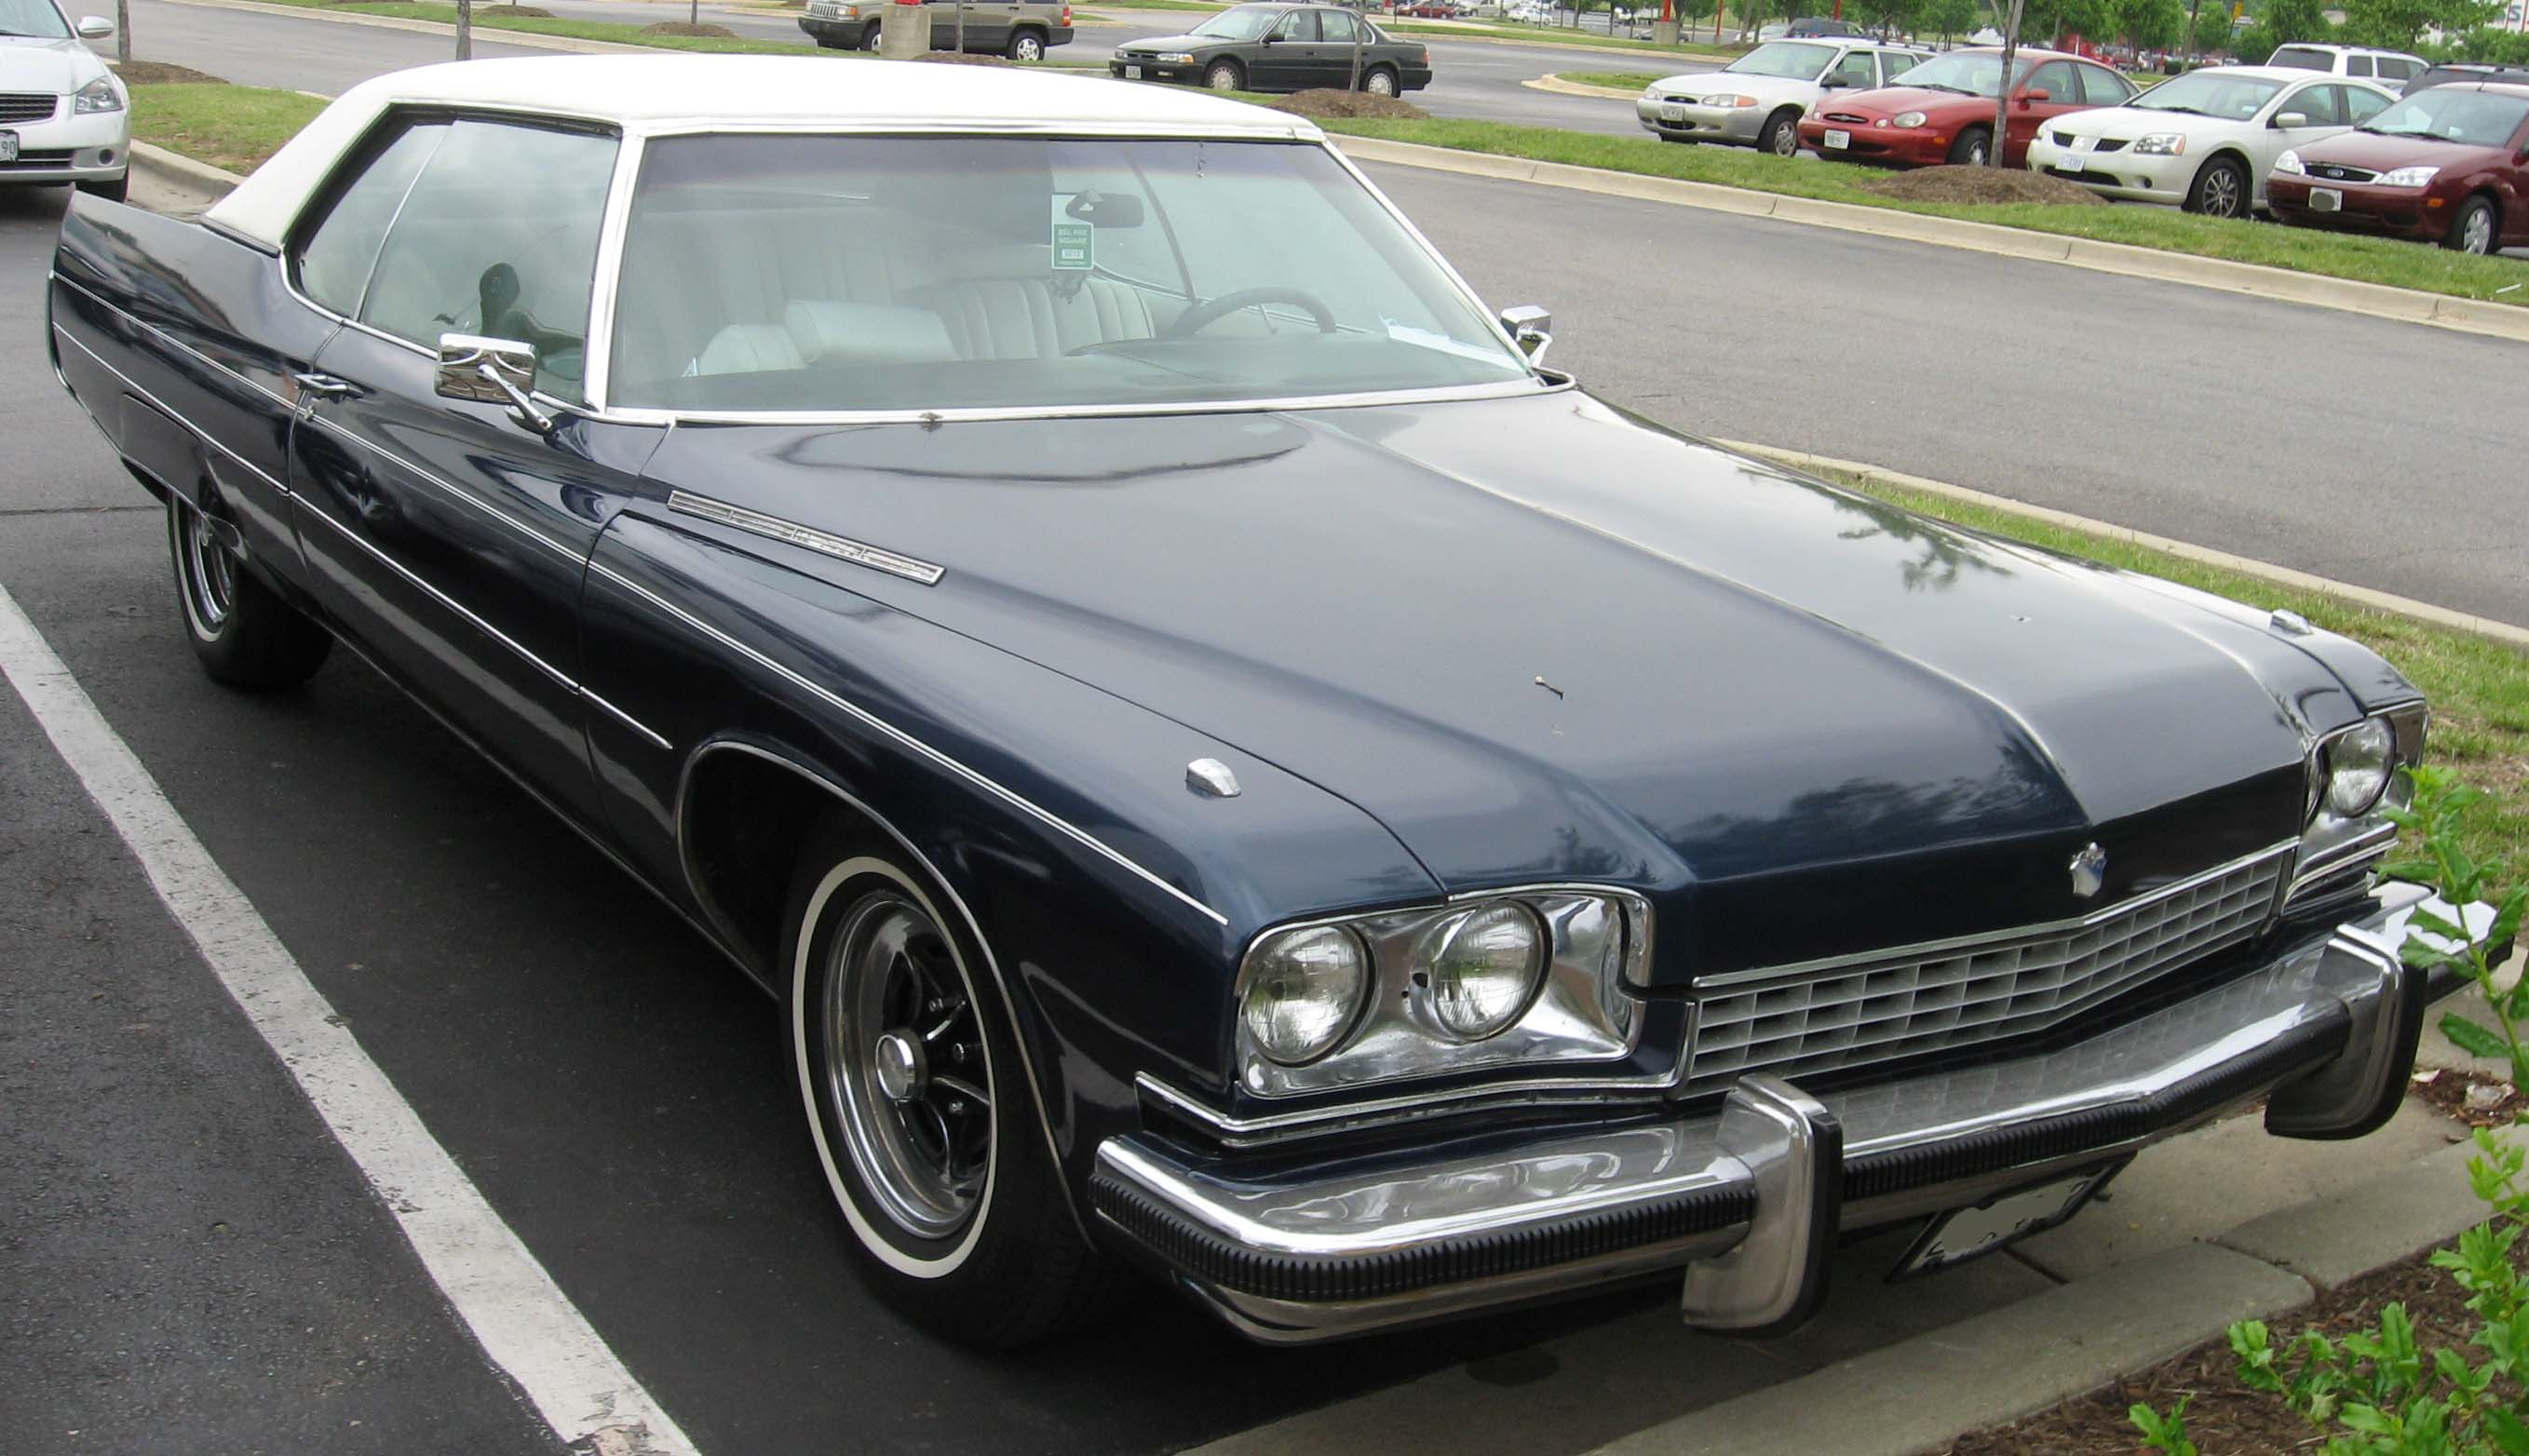 Buick Electra photo 10